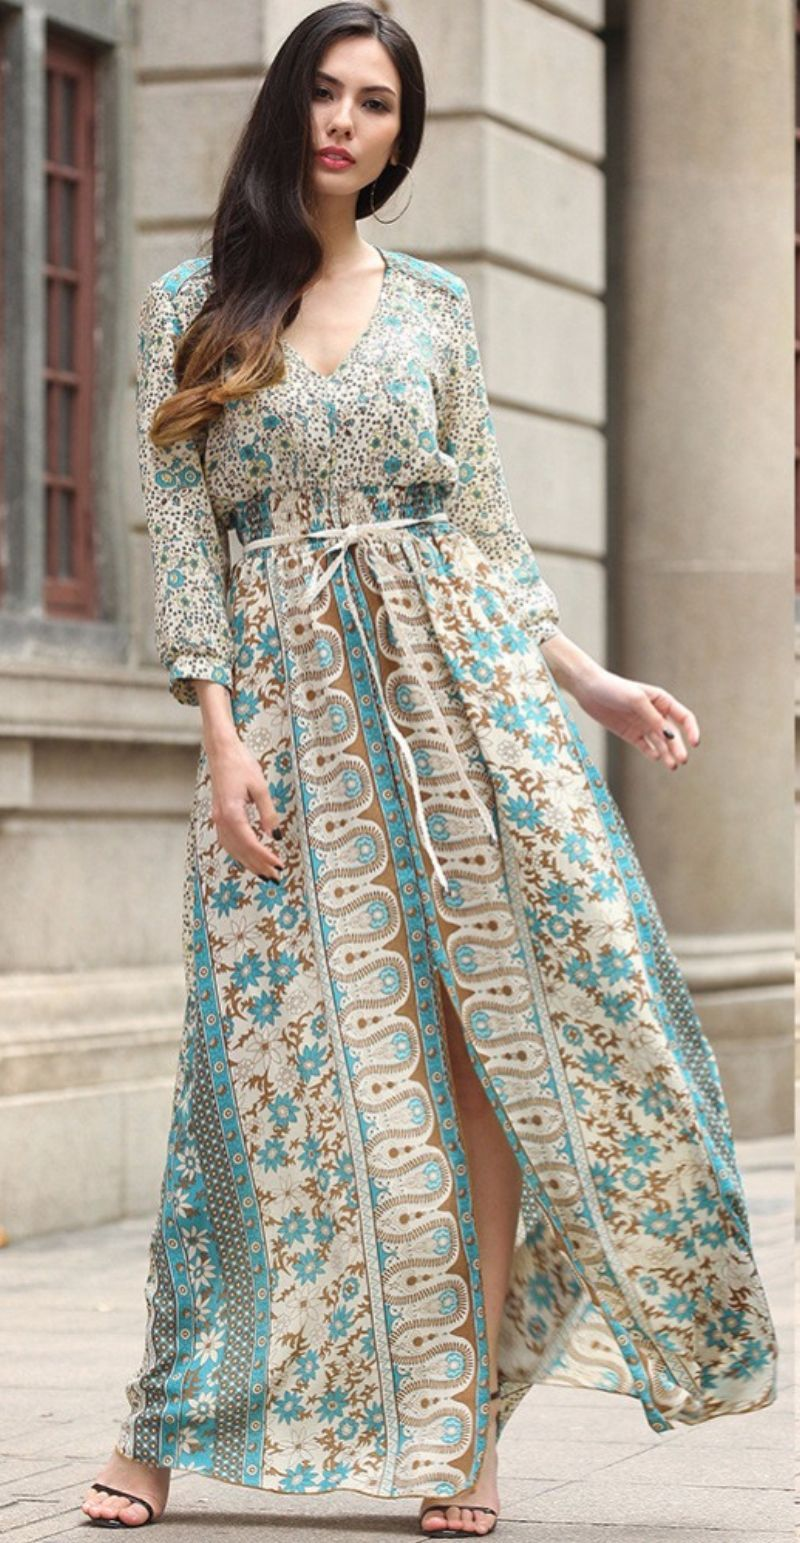 Womail New Vintage Long Sleeve Dress Beach Vintage Maxi Dresses Boho Casual V Neck Belt Lace Up Tunic Draped Plus Size